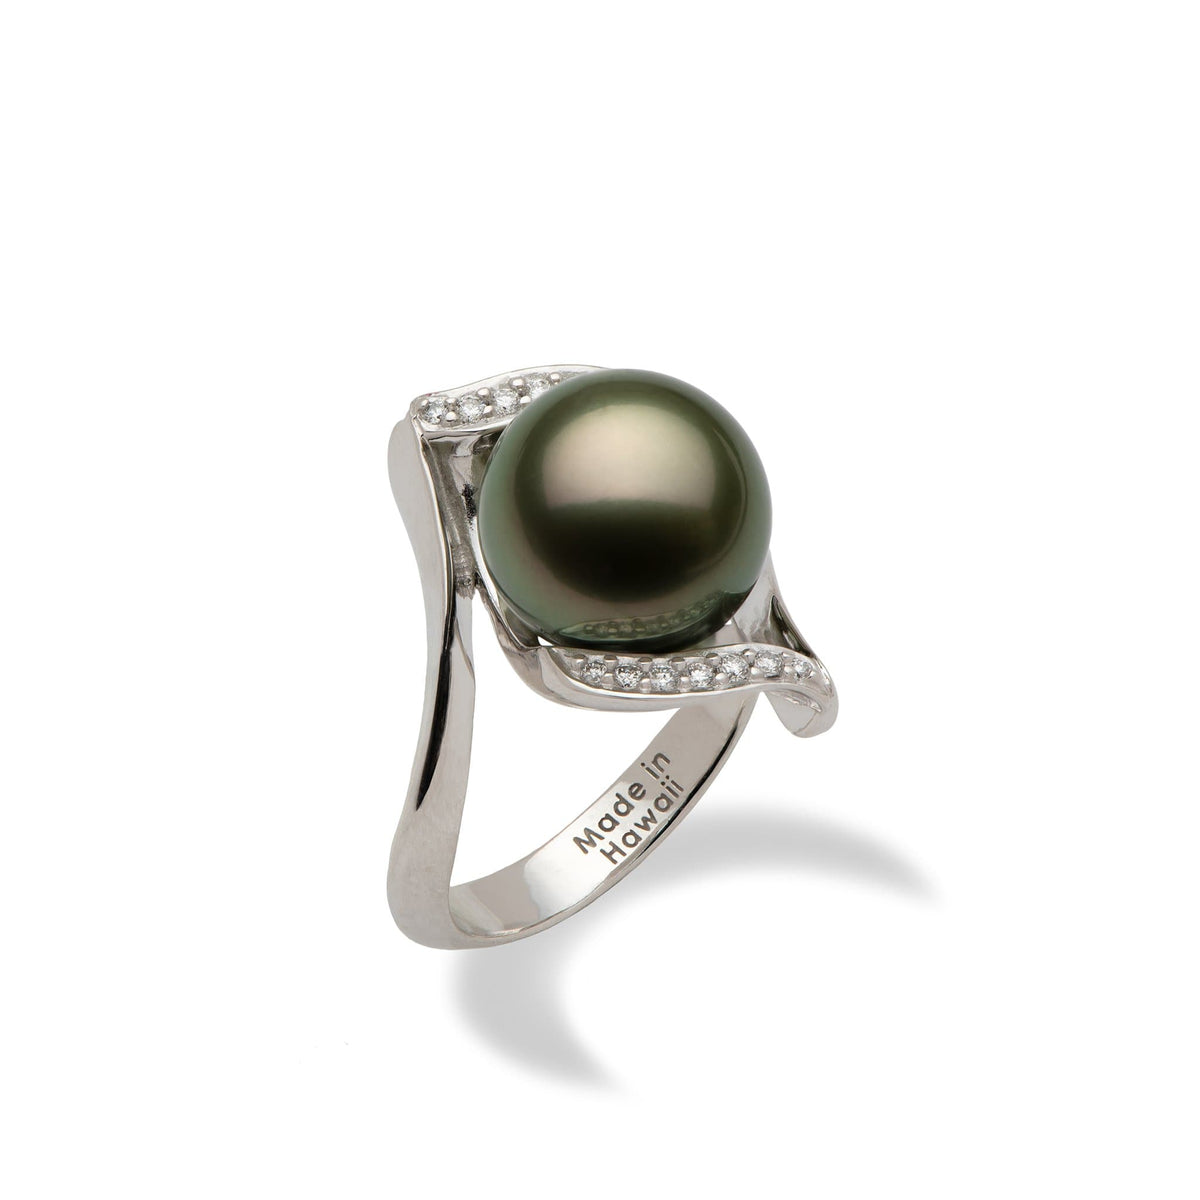 Tahitian Black Pearl Ring with Diamonds in 14K White Gold (11-12mm) - Maui Divers Jewelry